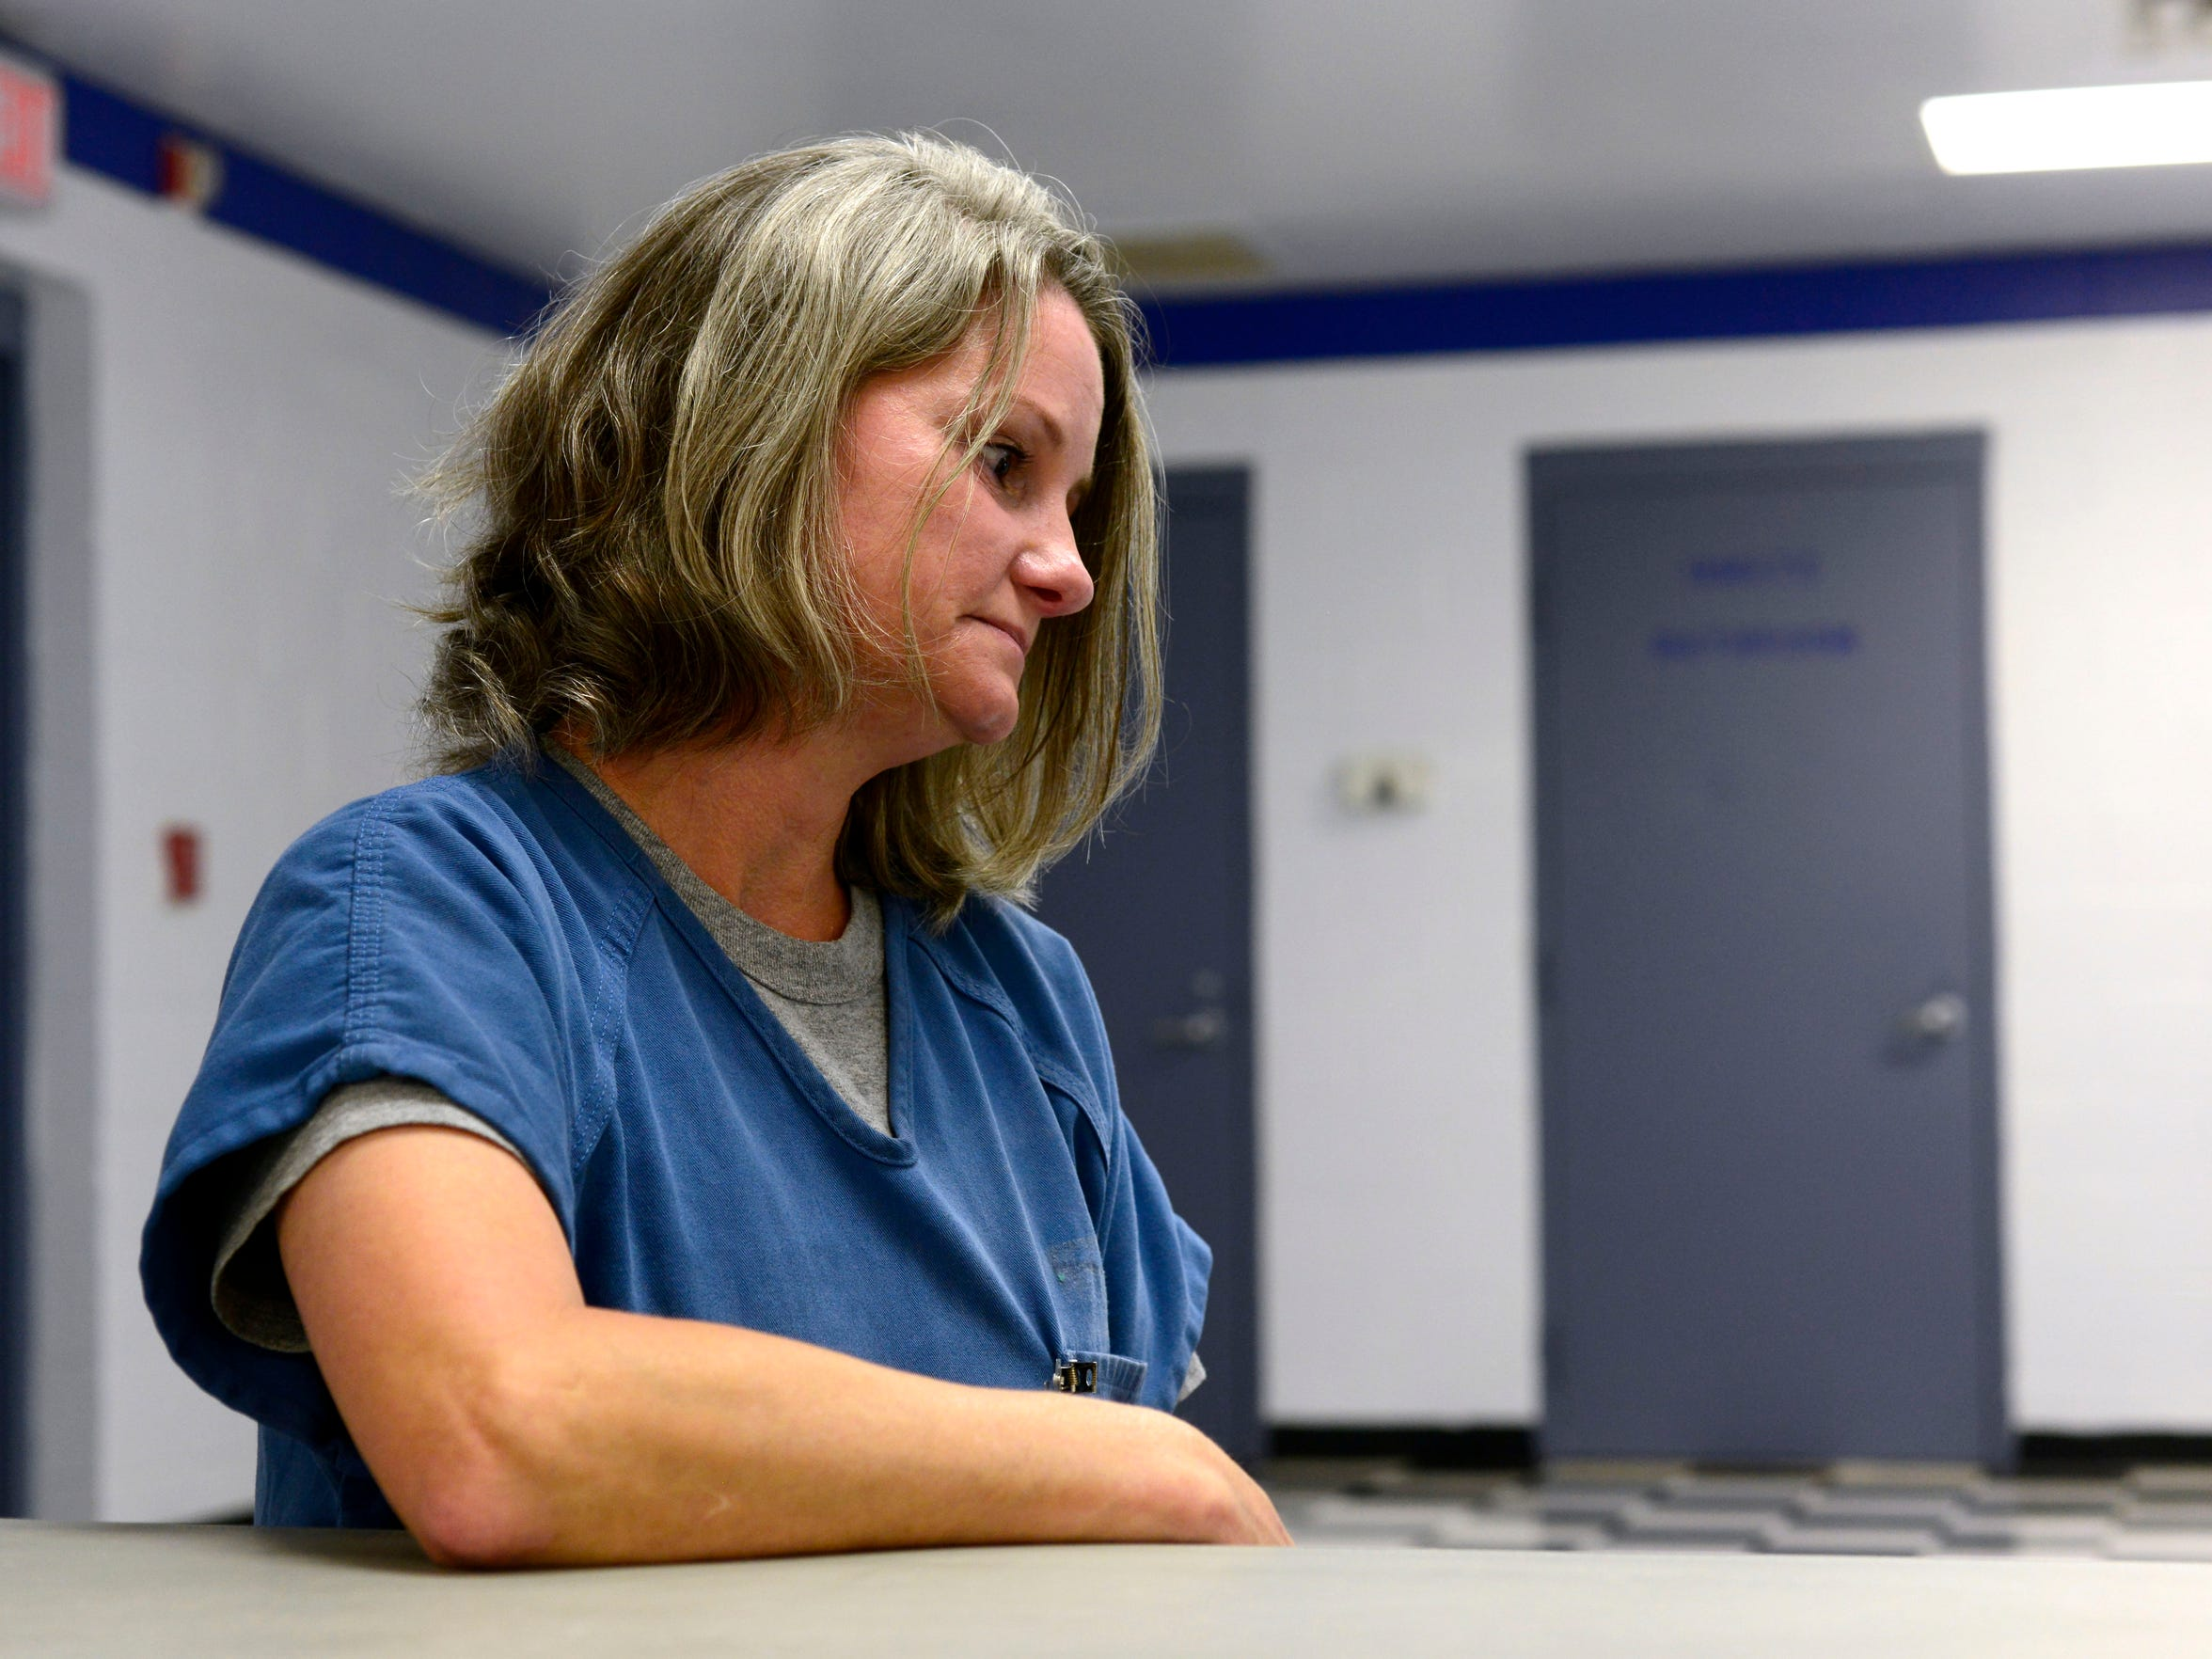 Deidre Cox came to Gadsden Correctional Facility in 2009. She attributes many of her problems to a long line of family abuse.